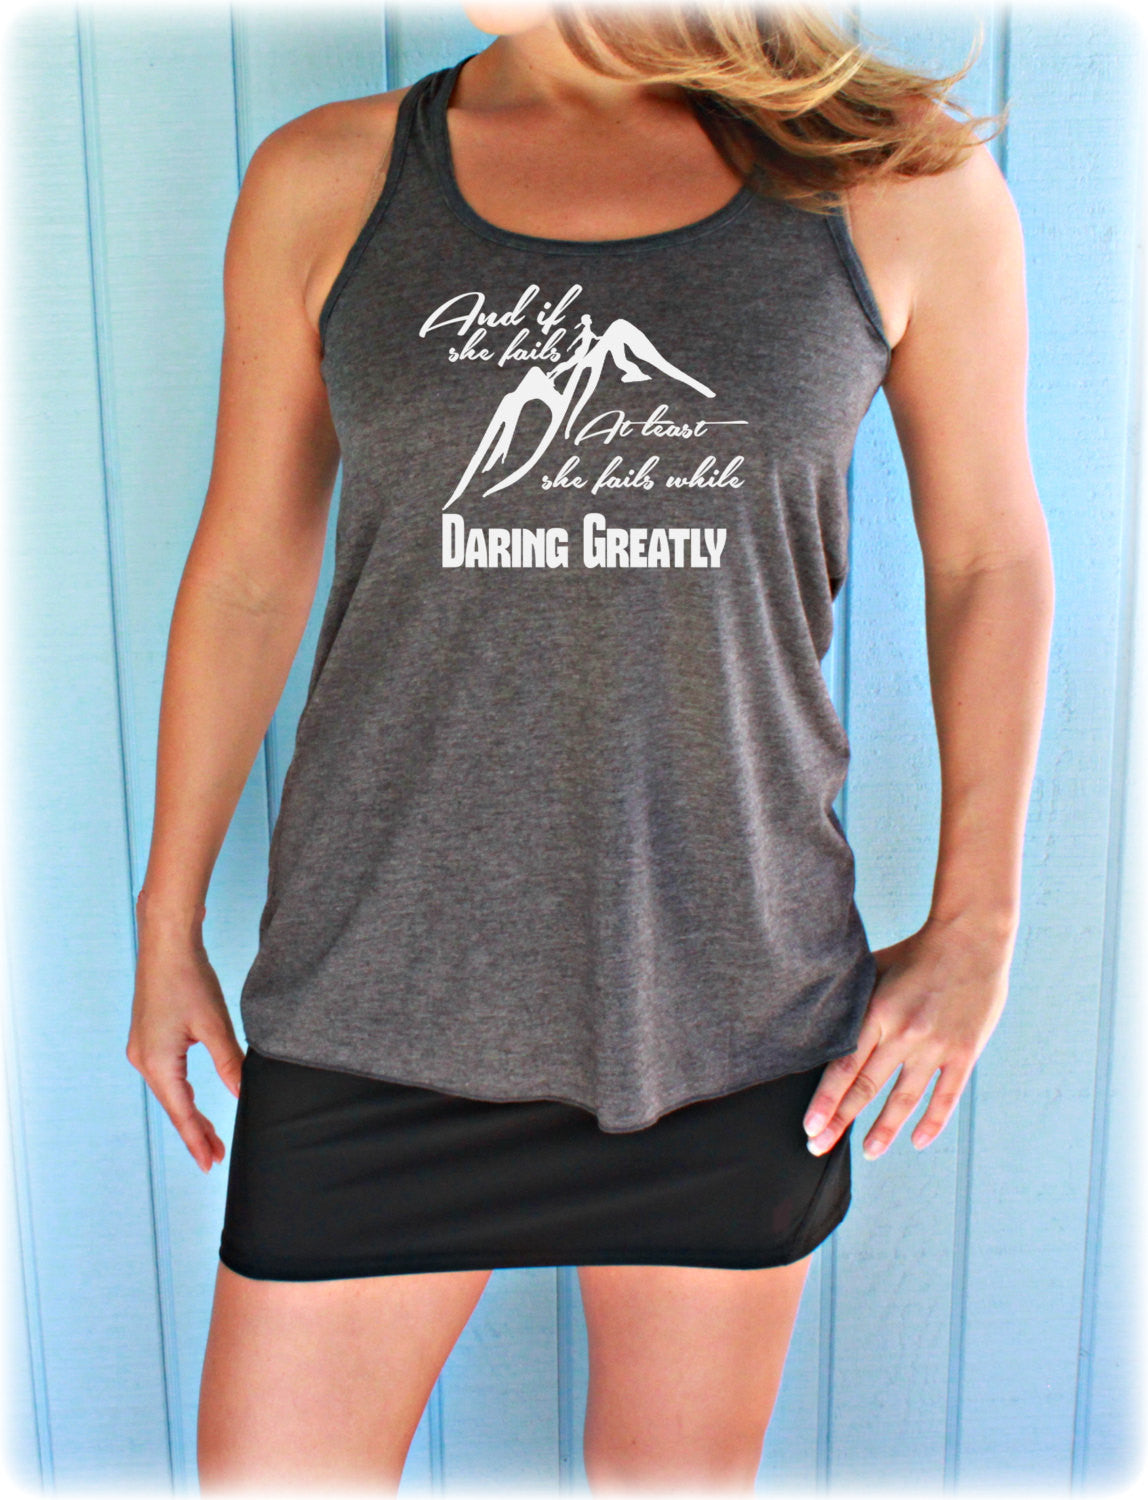 Flowy Workout Tank Top. Motivational Quote. If She Fails, She Fails While Daring Greatly. Cute Womens Workout Clothing. Fitness Motivation.